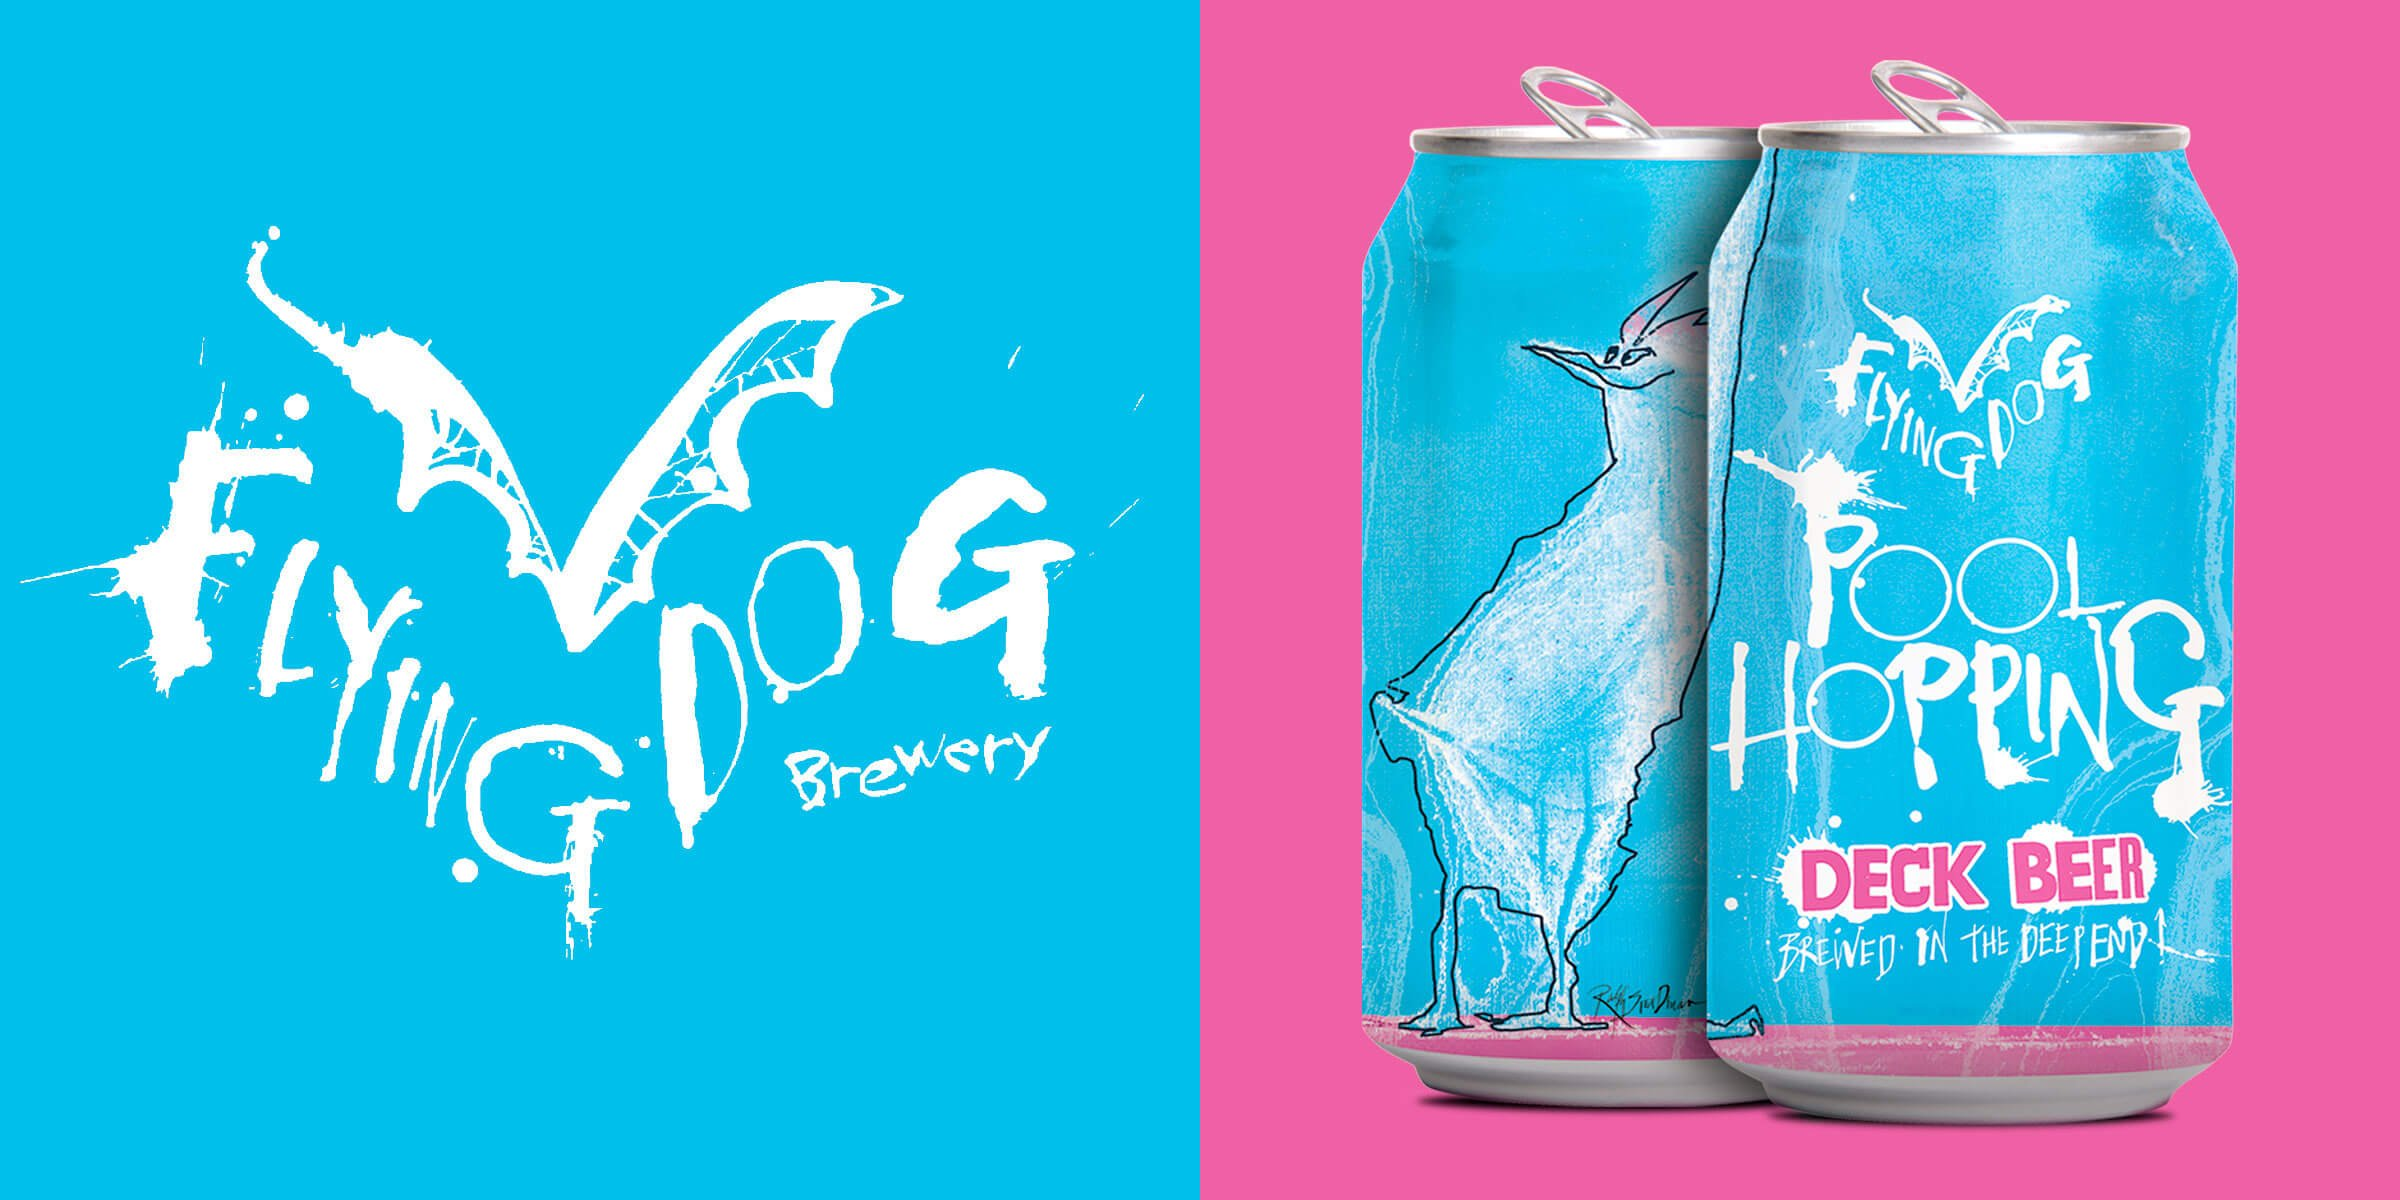 Flying Dog Brewery announced they're pioneering a new take on summer beers with the release of Pool Hopping, their first ever newly designated deck beer.